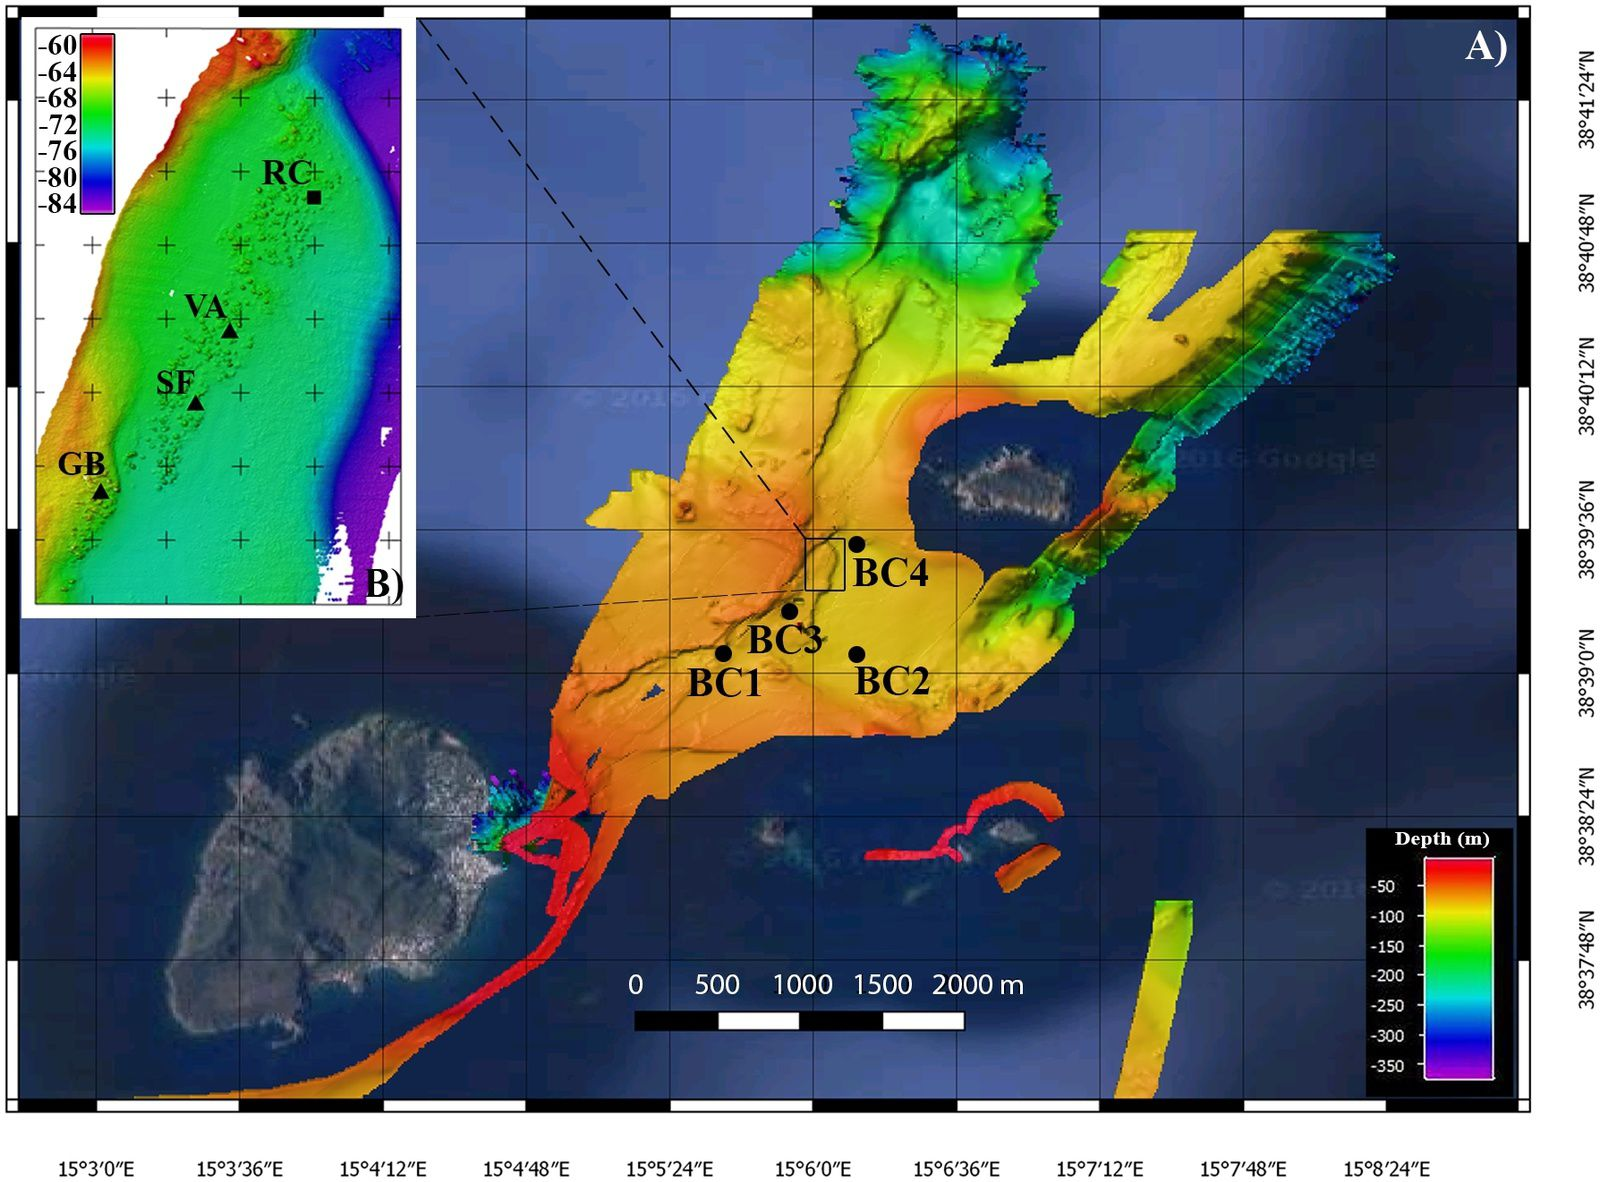 High-resolution swath bathymetry maps.  A) map of the whole investigated area, SW of Basiluzzo Islet. The black dots indicate the benthic chamber stations; B) map of the Smoking Land hydrothermal field (WGS84, UTM33, cell size 20x20 cm, vertical exaggeration 3X). The black triangles indicate the location of the sampled chimneys, while the black square indicates the location of the chimney reconstructed based on HD video-images. ./ Extract from source document.